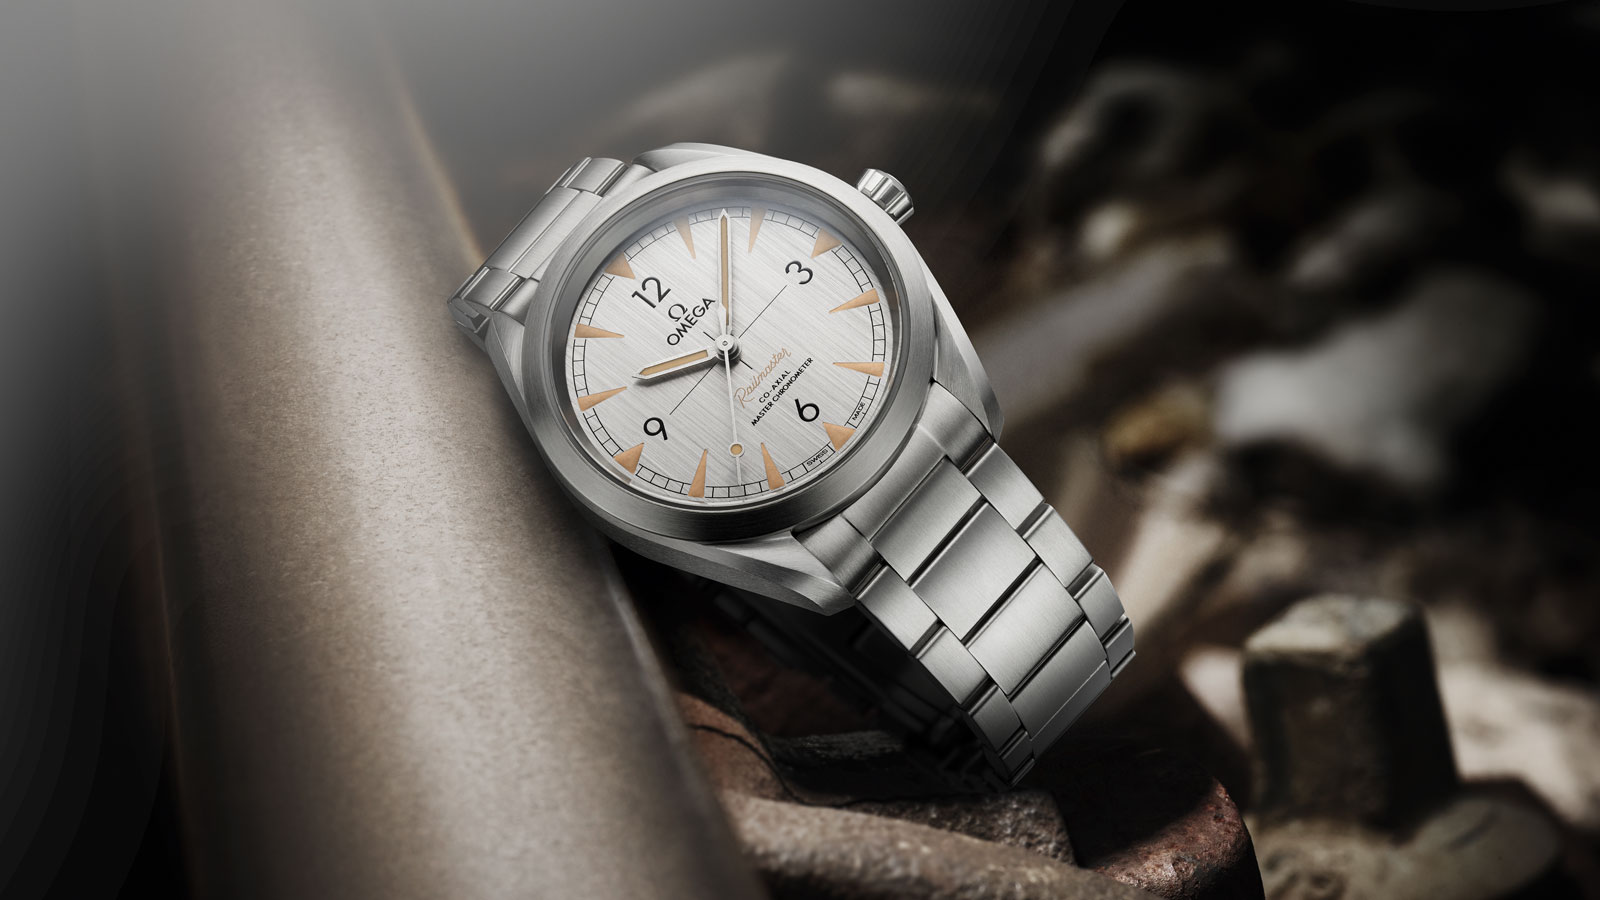 Contextualized photo of the Seamaster Steel Chronometer Watch